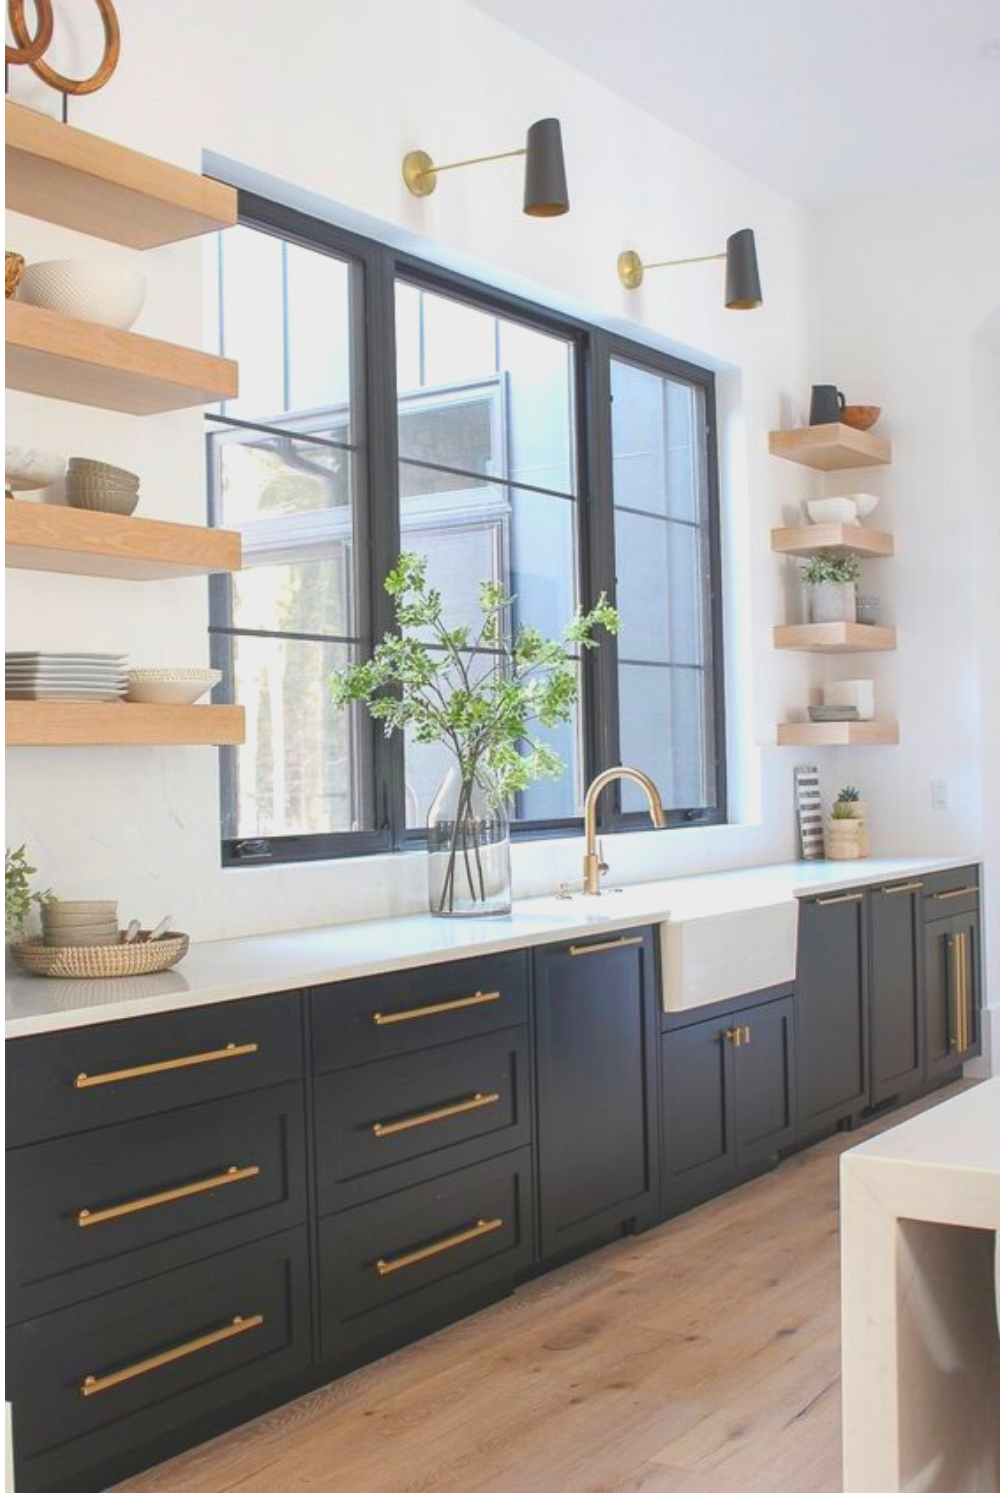 35 The Best Kitchen Paint Colors According To Top Designers In 2020 Interior Design Kitchen Painted Kitchen Cabinets Colors Black Kitchen Cabinets